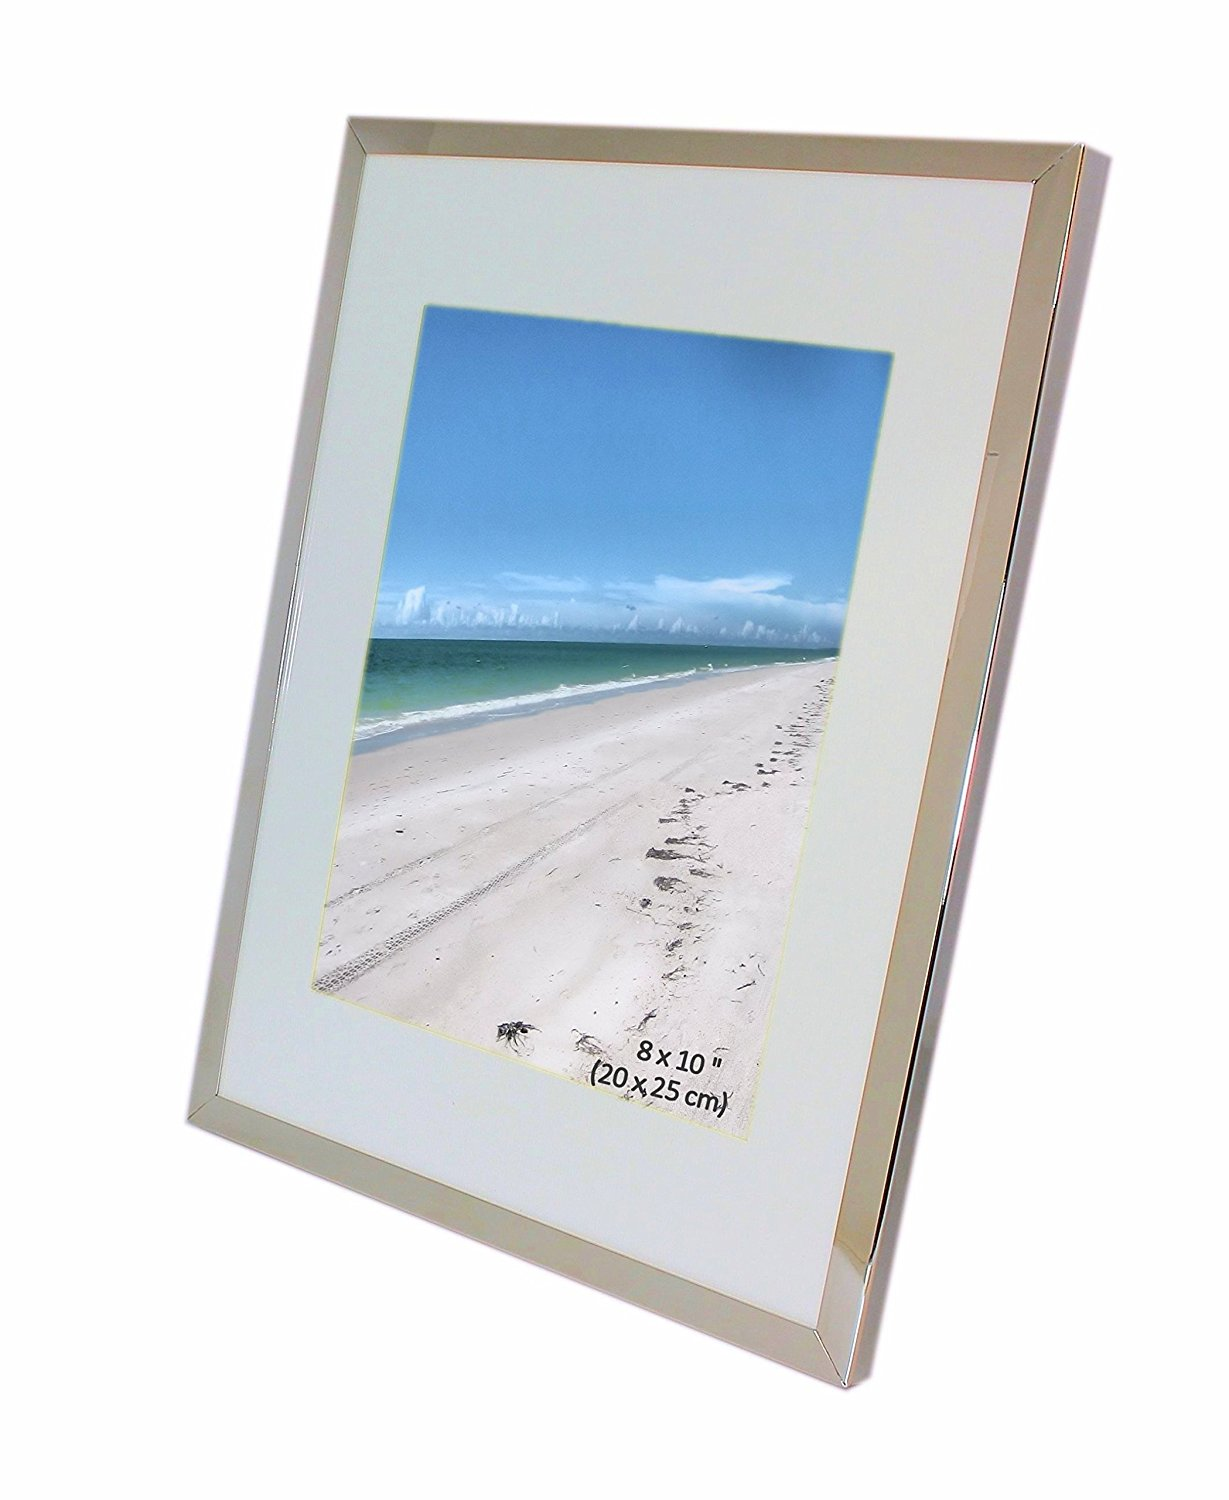 Cheap 10x14 Frame, find 10x14 Frame deals on line at Alibaba.com